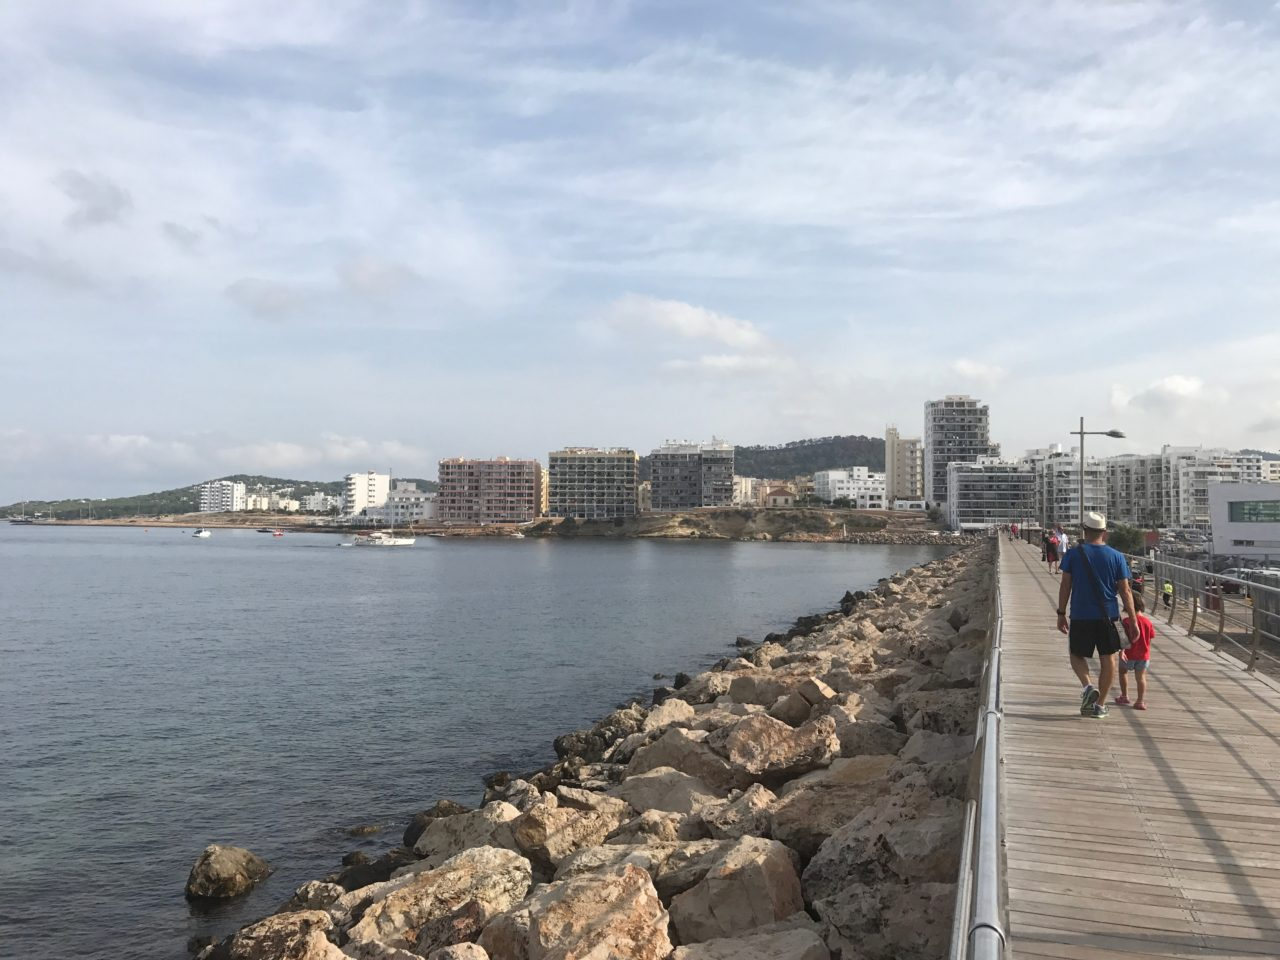 People Walking On A Pier With City View